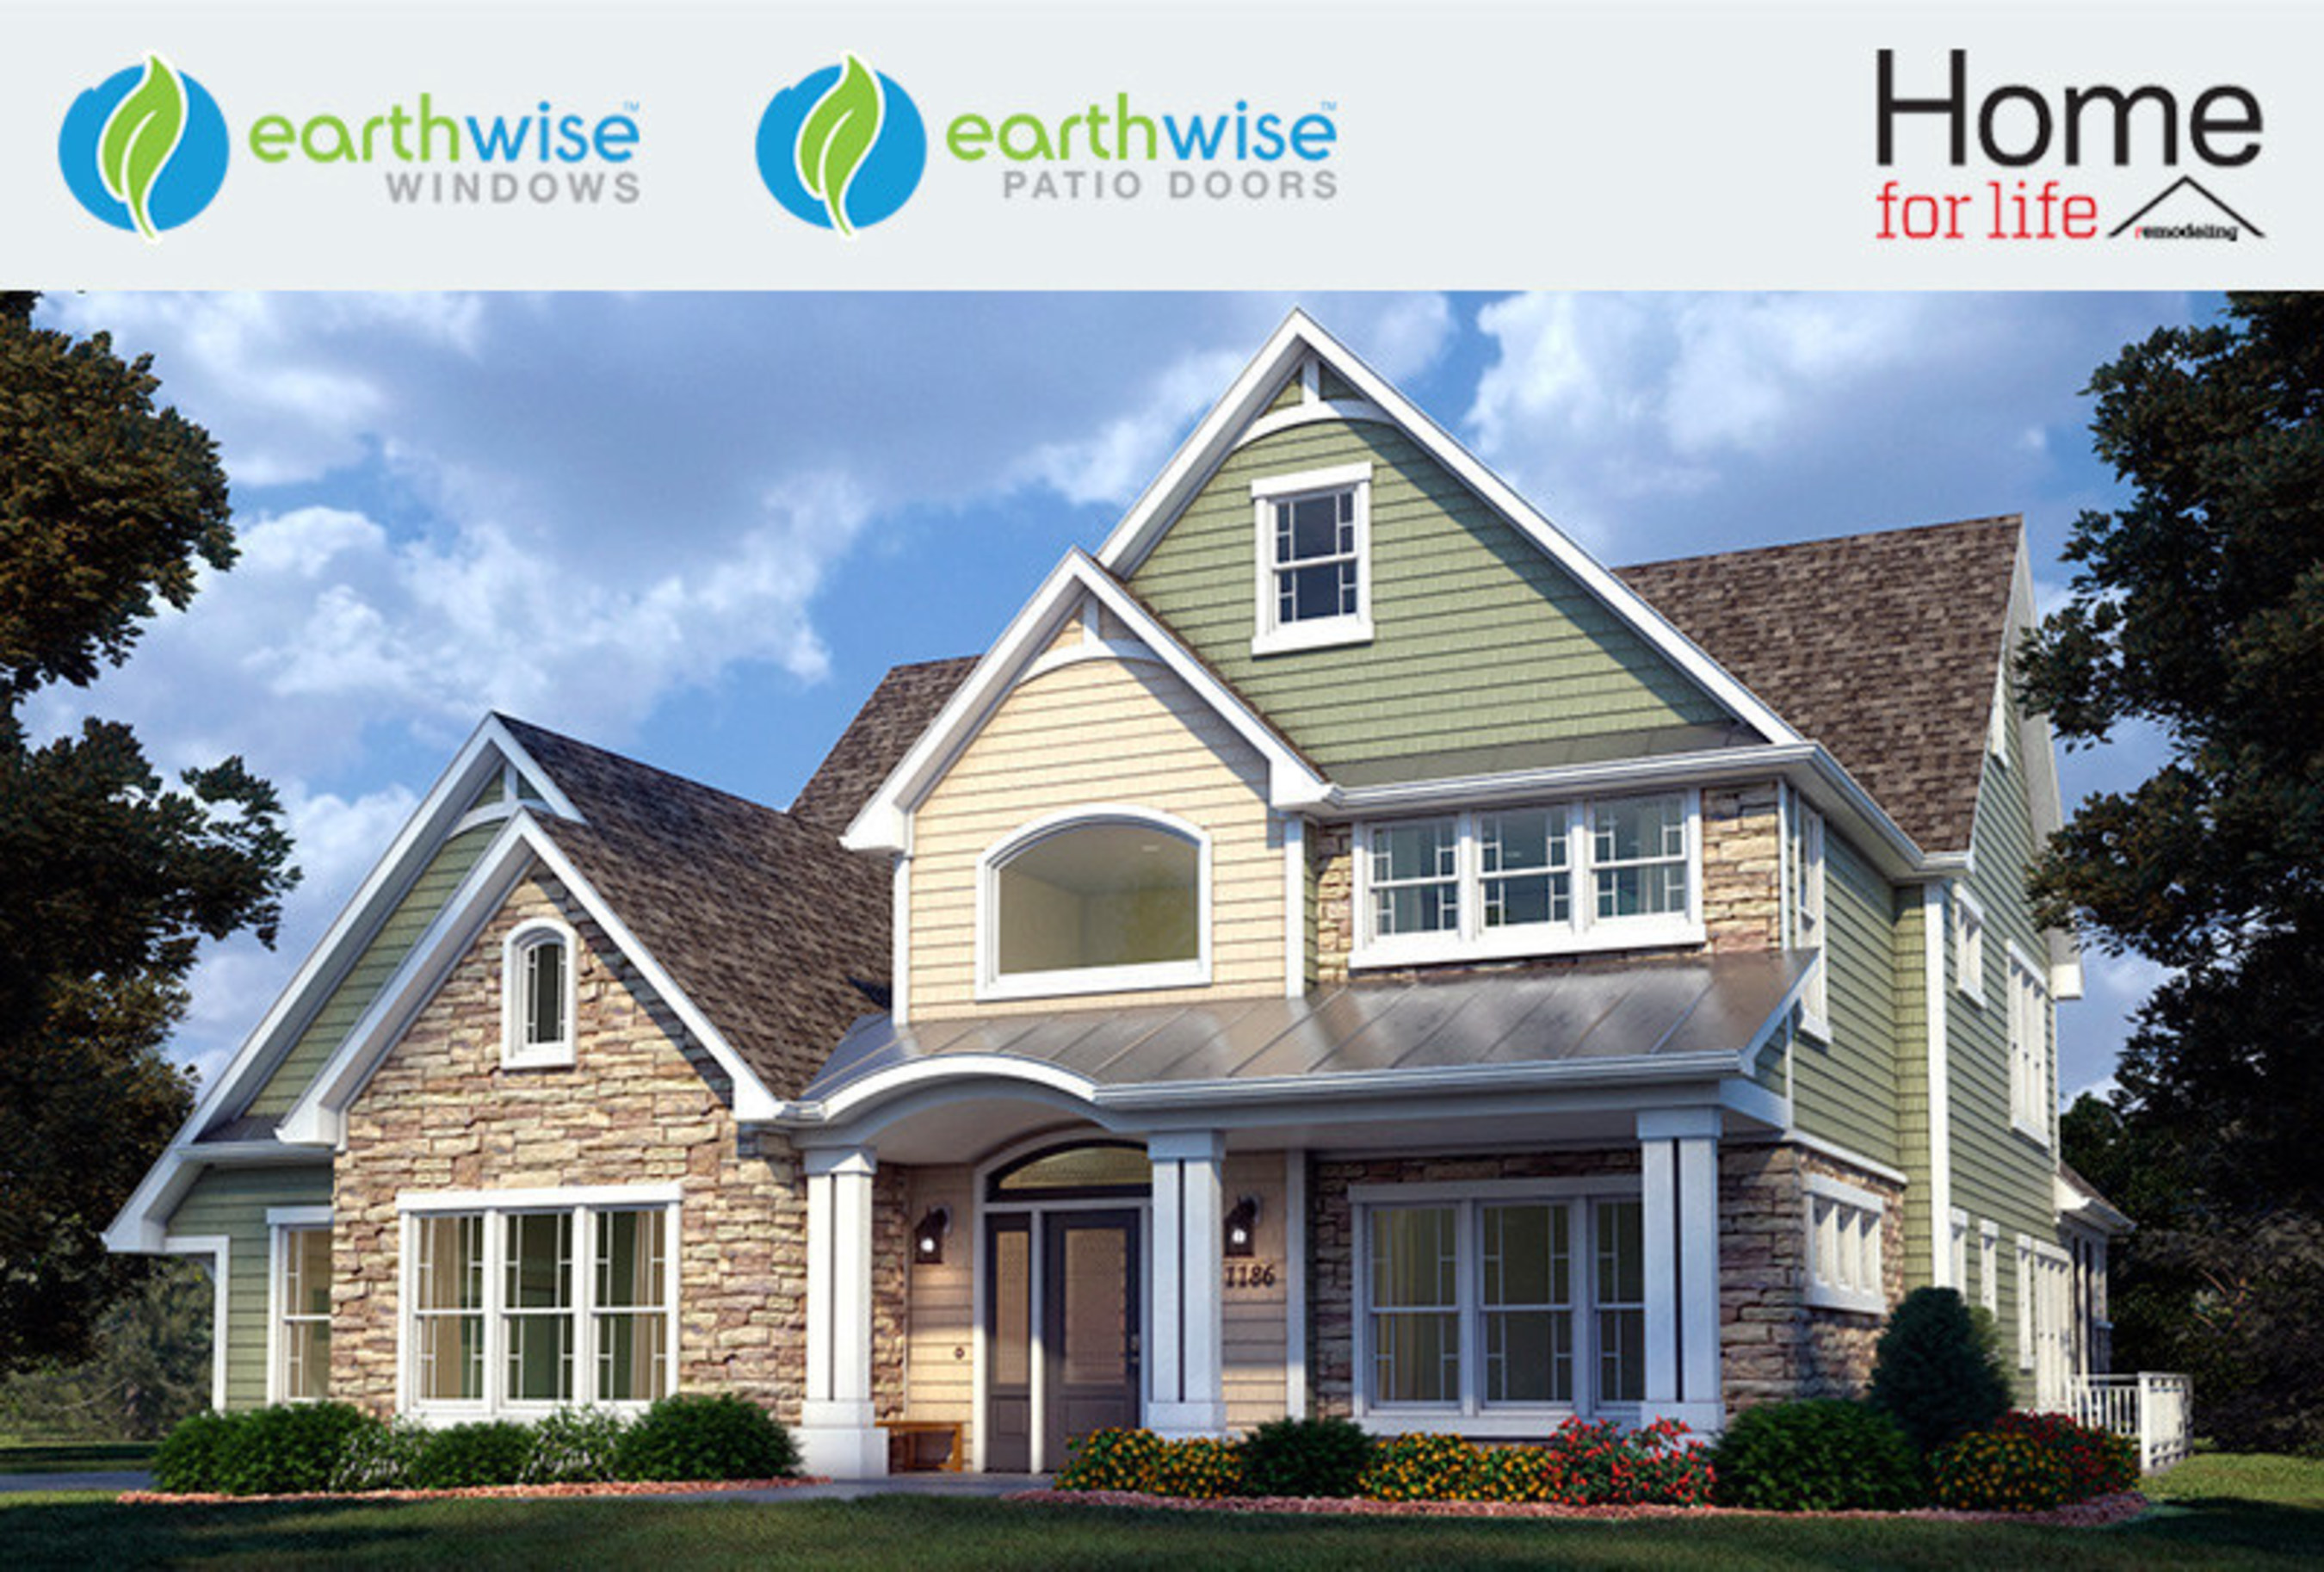 """Earthwise Windows & Doors is sponsoring Home for Life, a photo-realistic tour demonstrating how to renovate a home for """"aging in place."""" This concept is also known as Universal Design."""